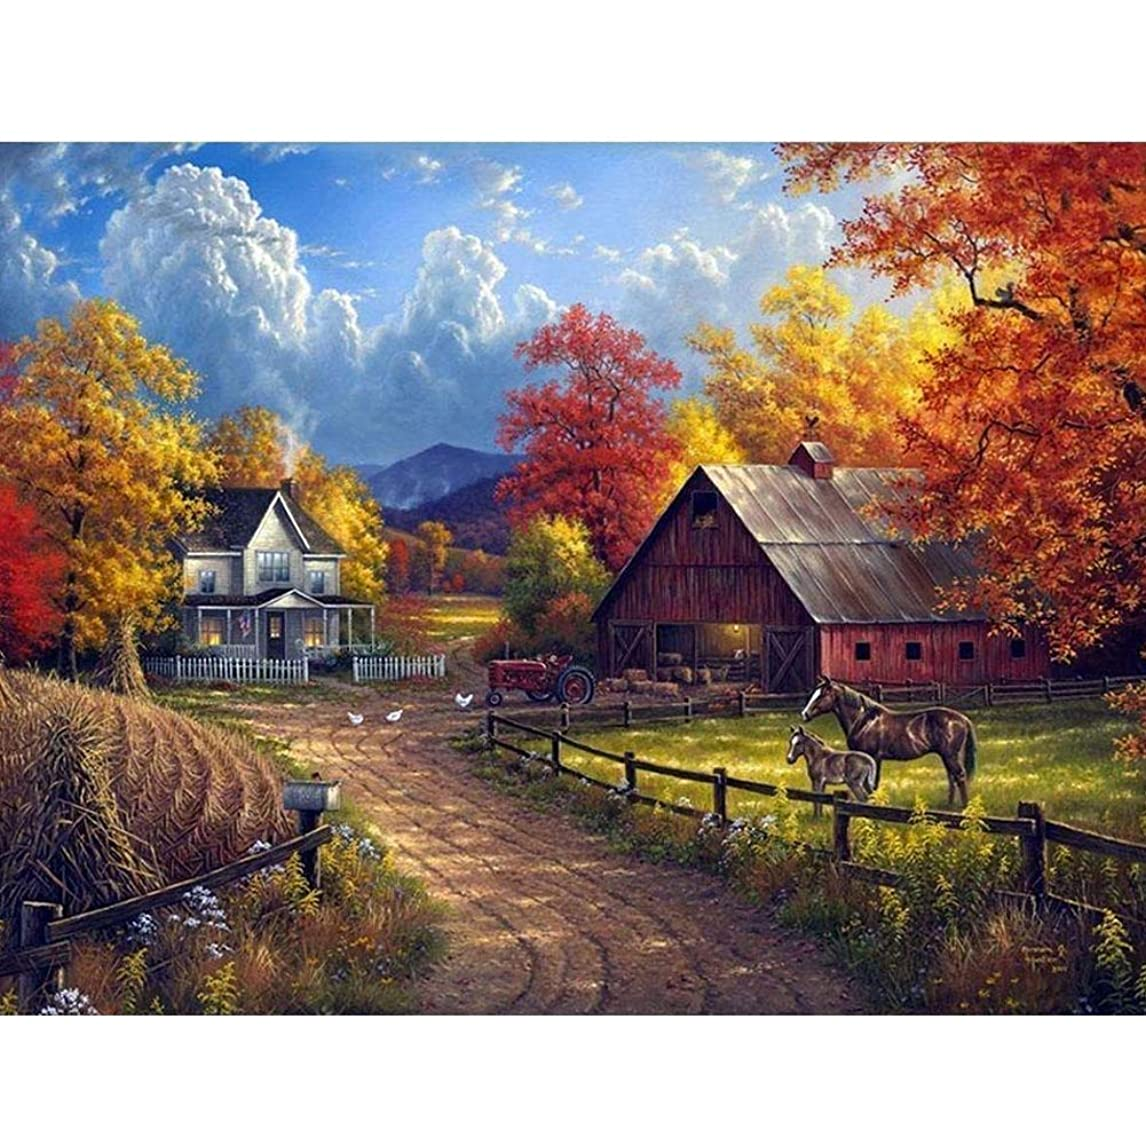 DIY 5D Diamond Painting by Number Kit for Adult, Full Drill Diamond Embroidery Dotz Kit Home Wall Decor-15.7x11.8